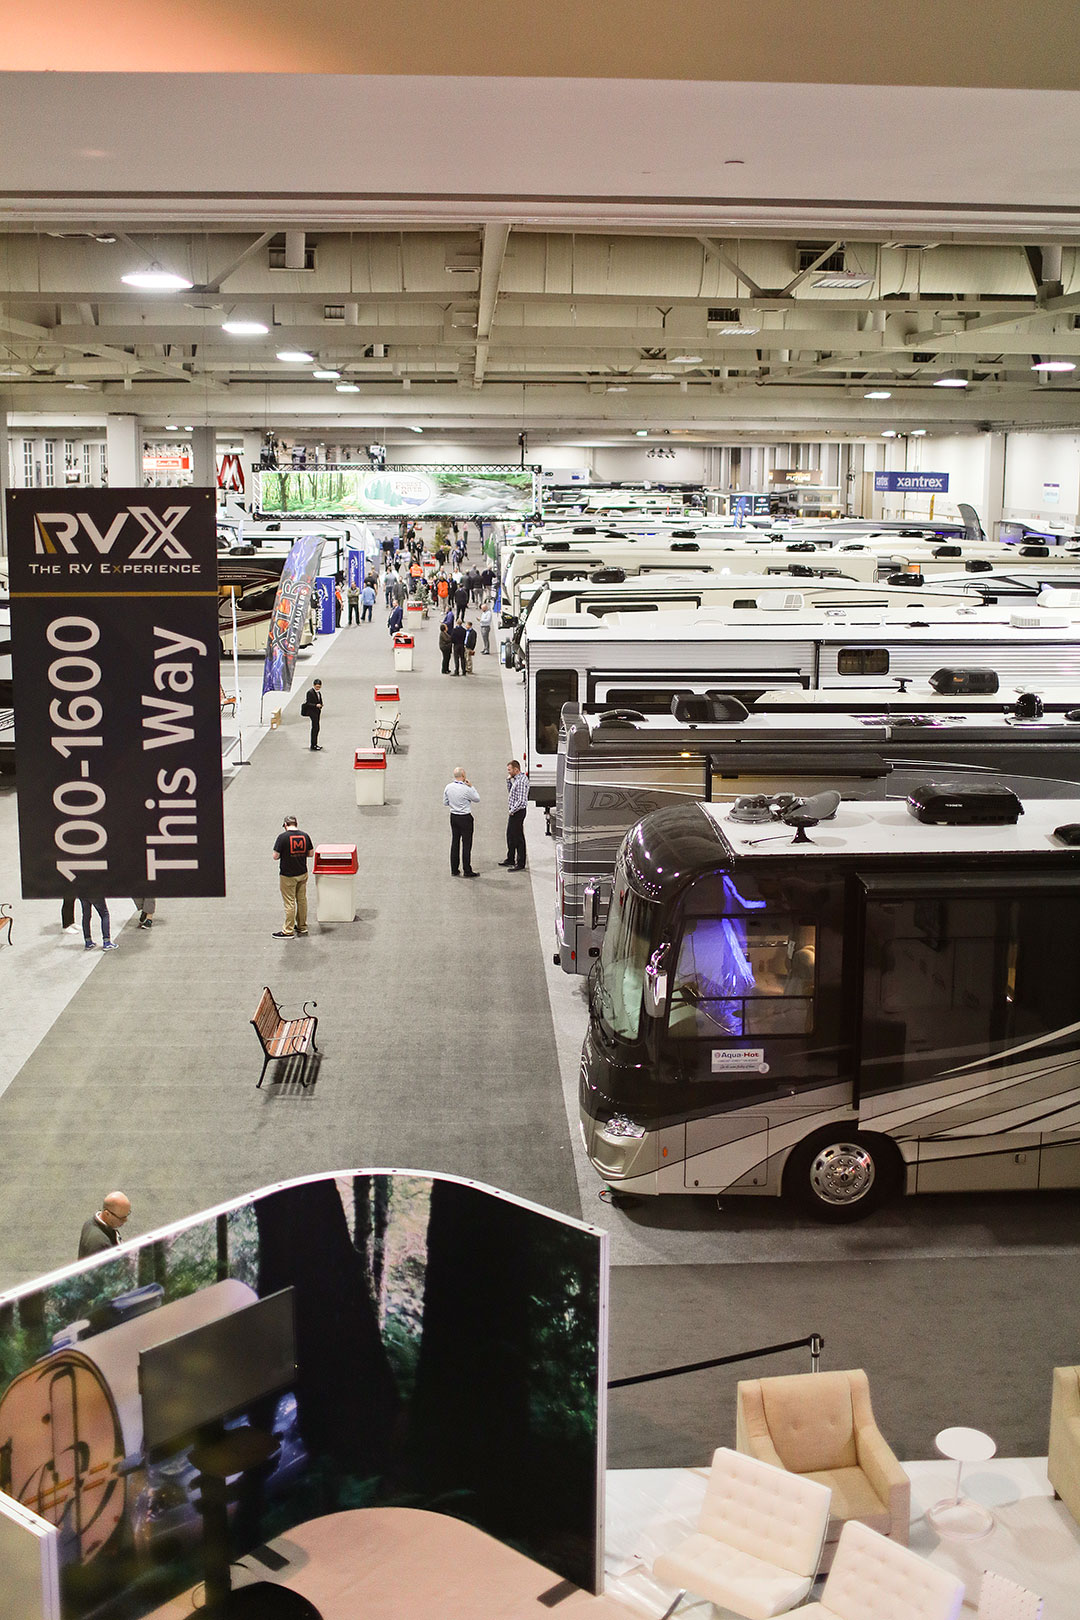 The Best RVs of 2019 Revealed at RVX